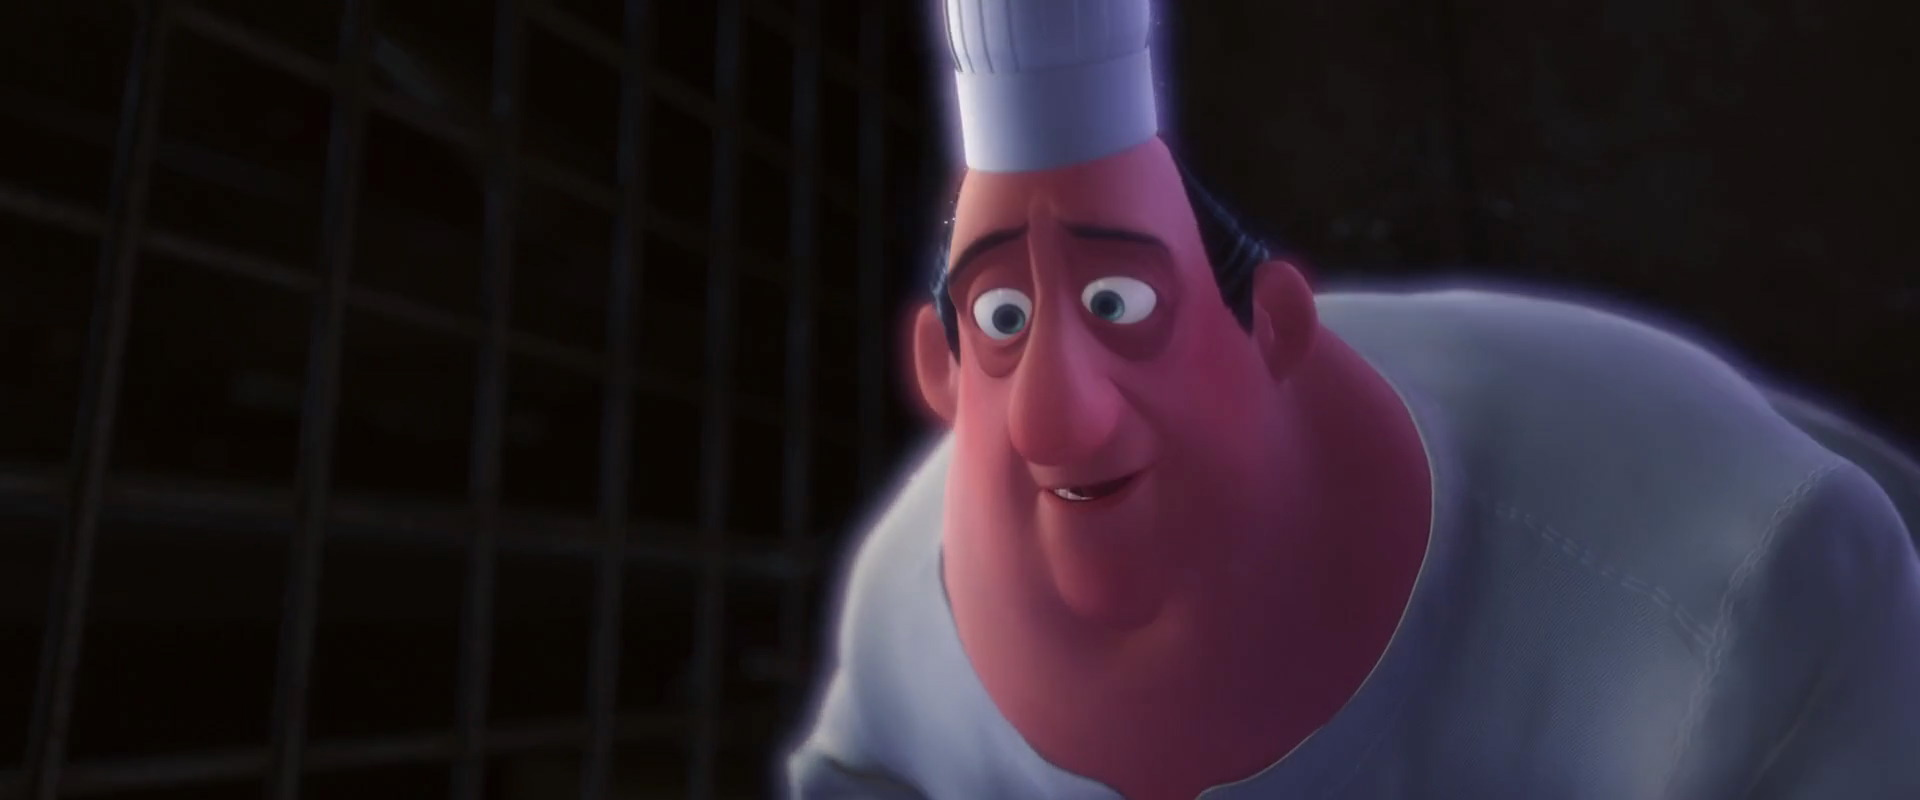 auguste-gusteau-personnage-ratatouille-06